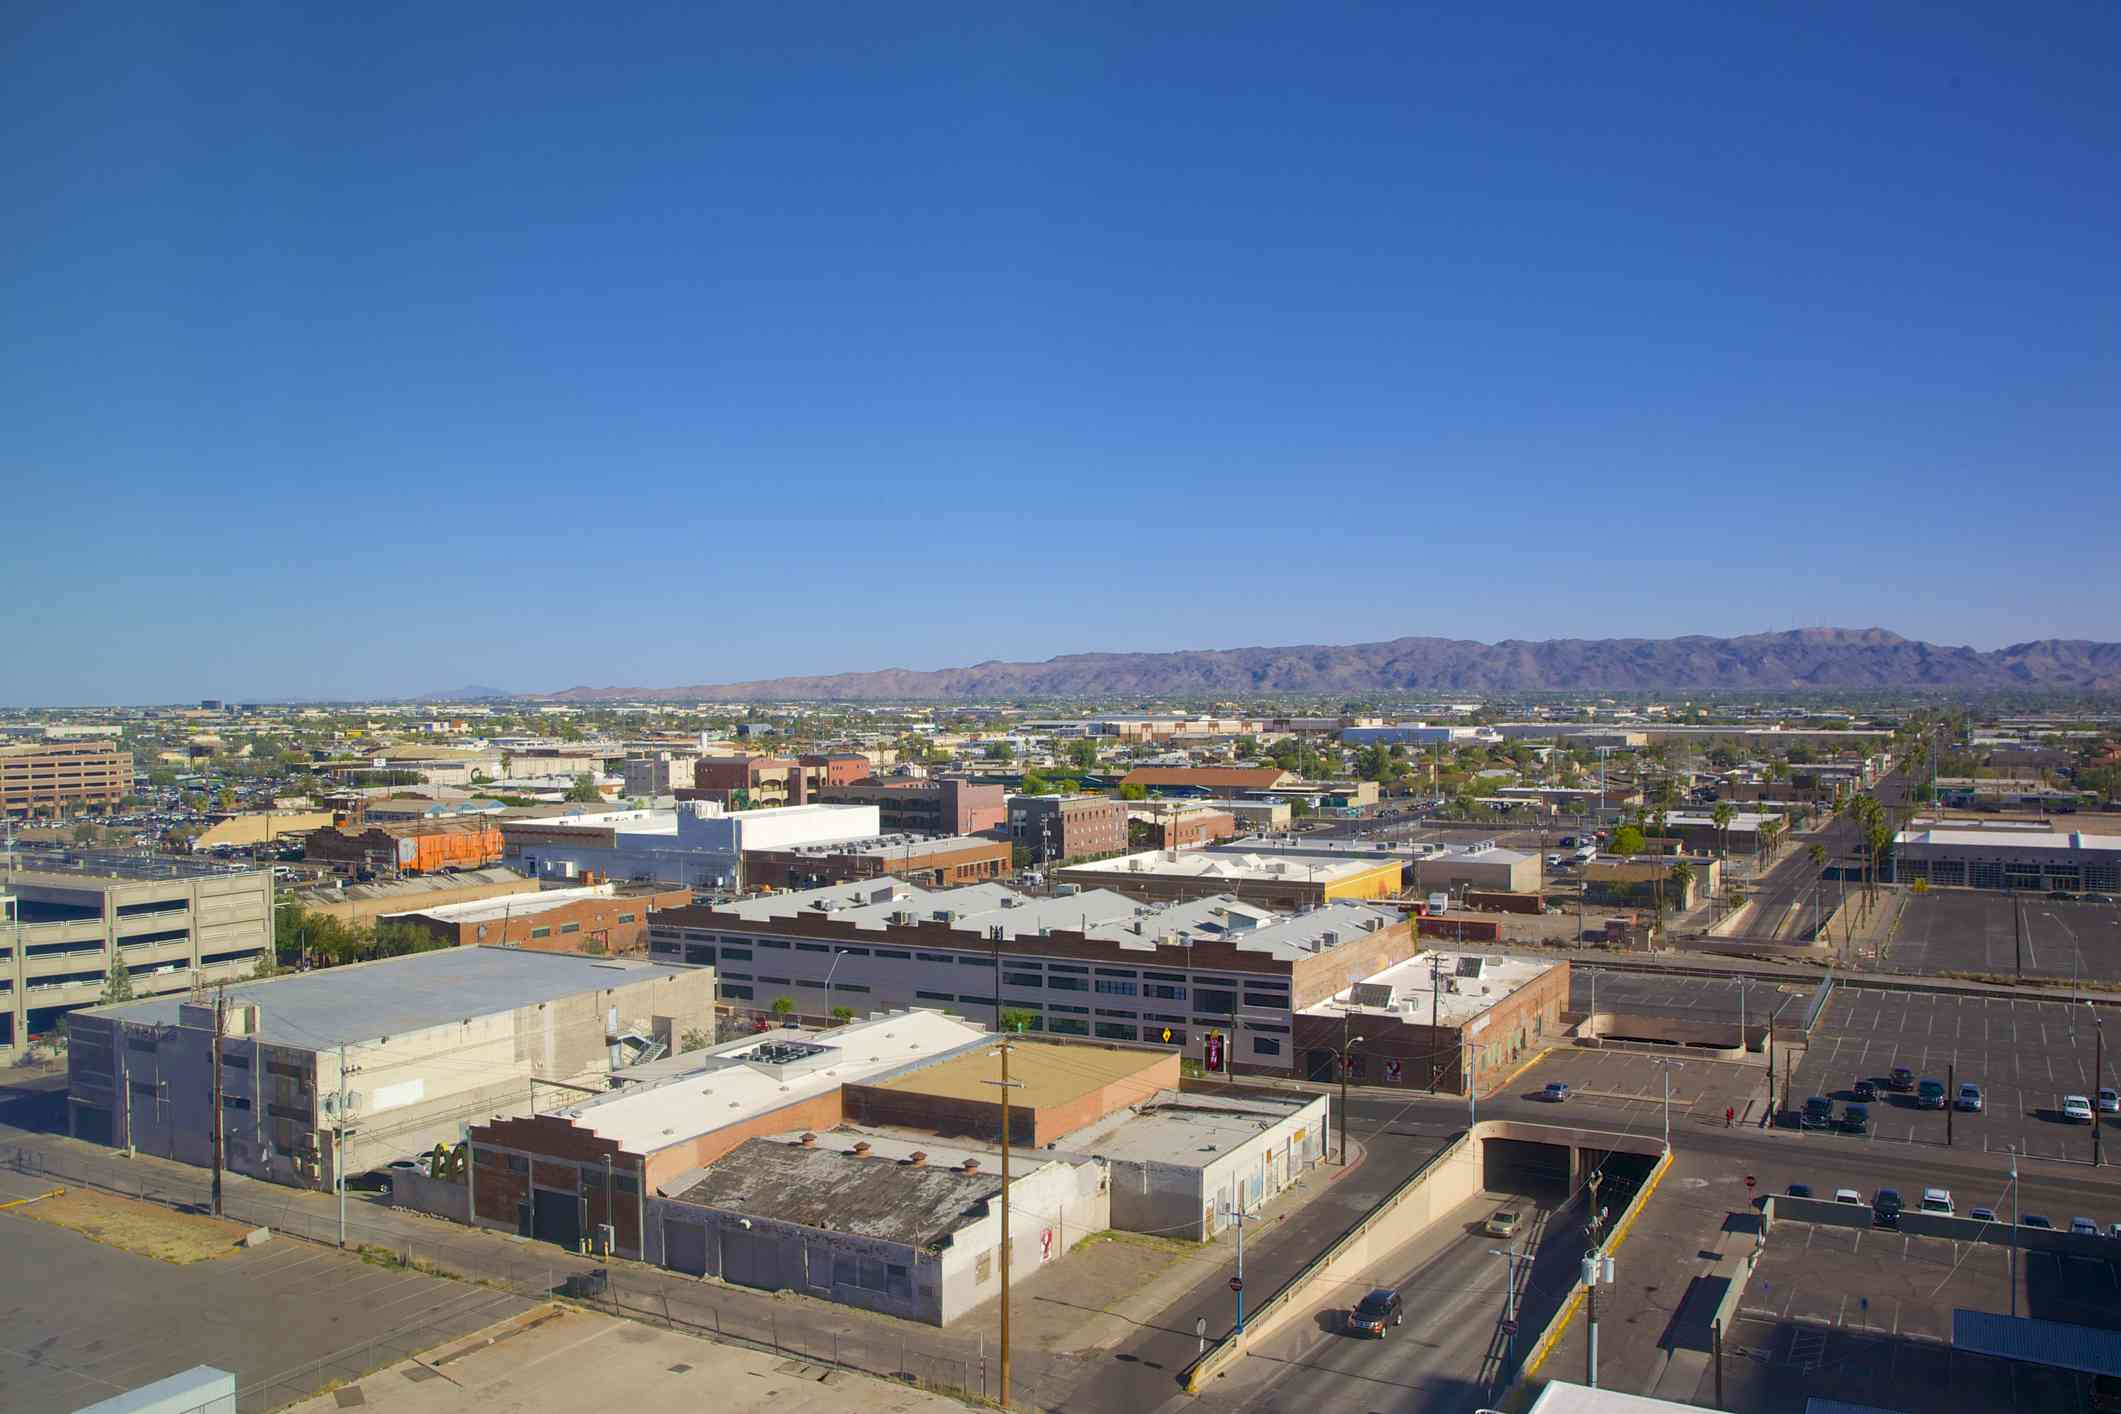 View from high up of Phoenix's warehouse district